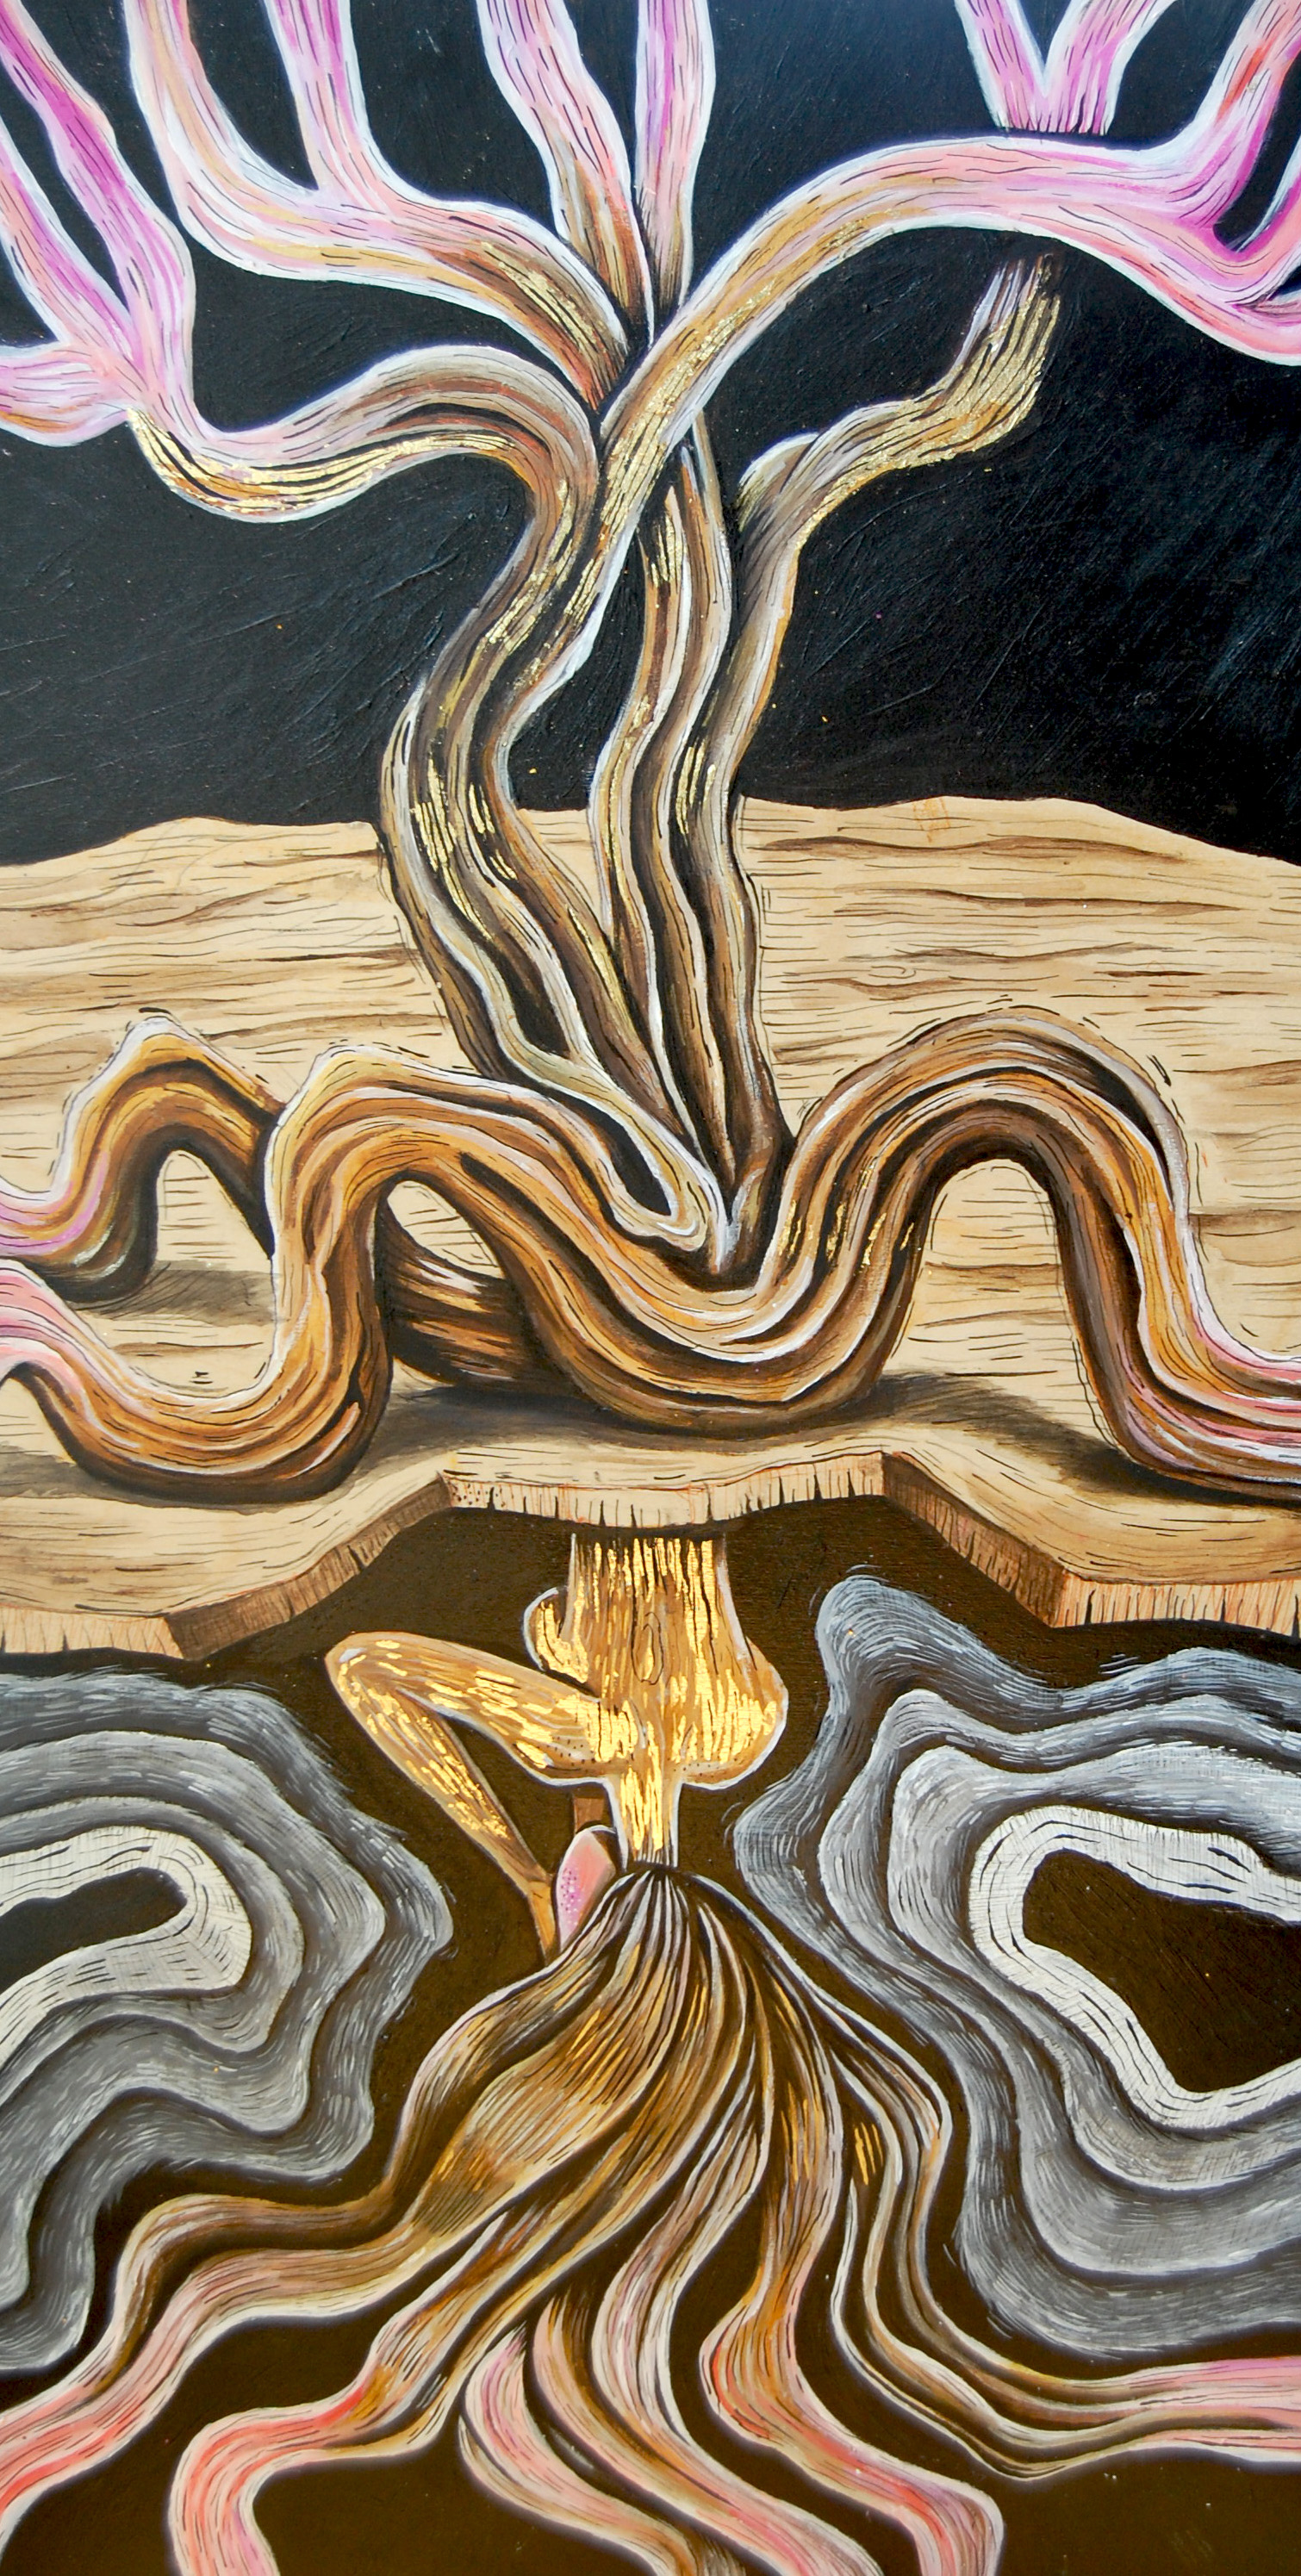 "ROOTS  Acrylic, Ink and Gold Leaf on Wood  12"" x 24"""